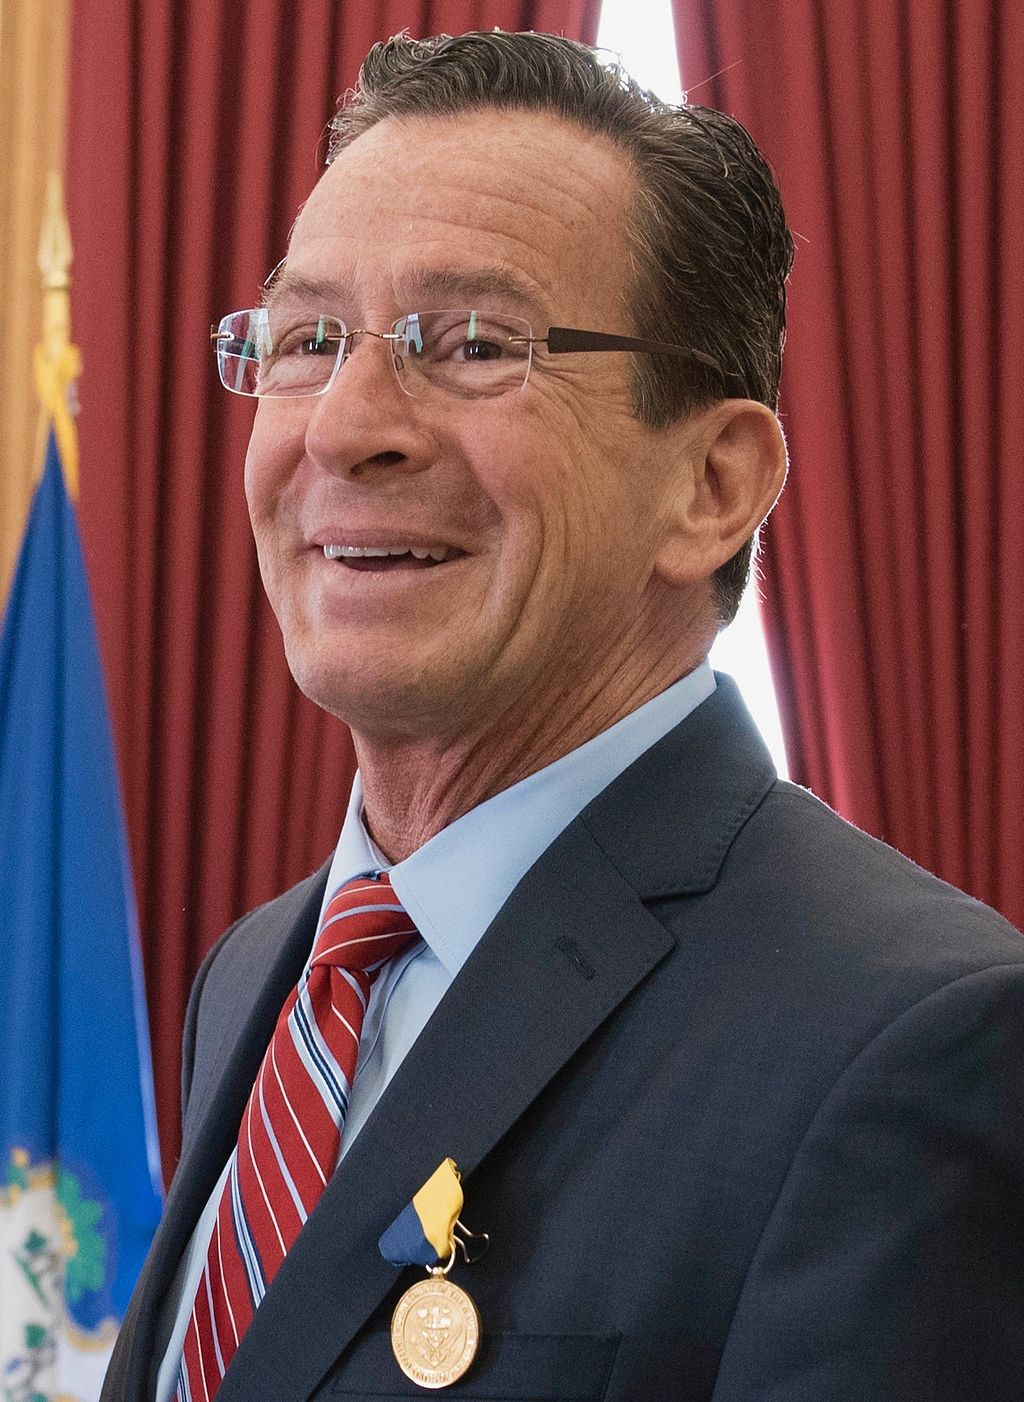 Gov. Dannel Malloy in 2016,